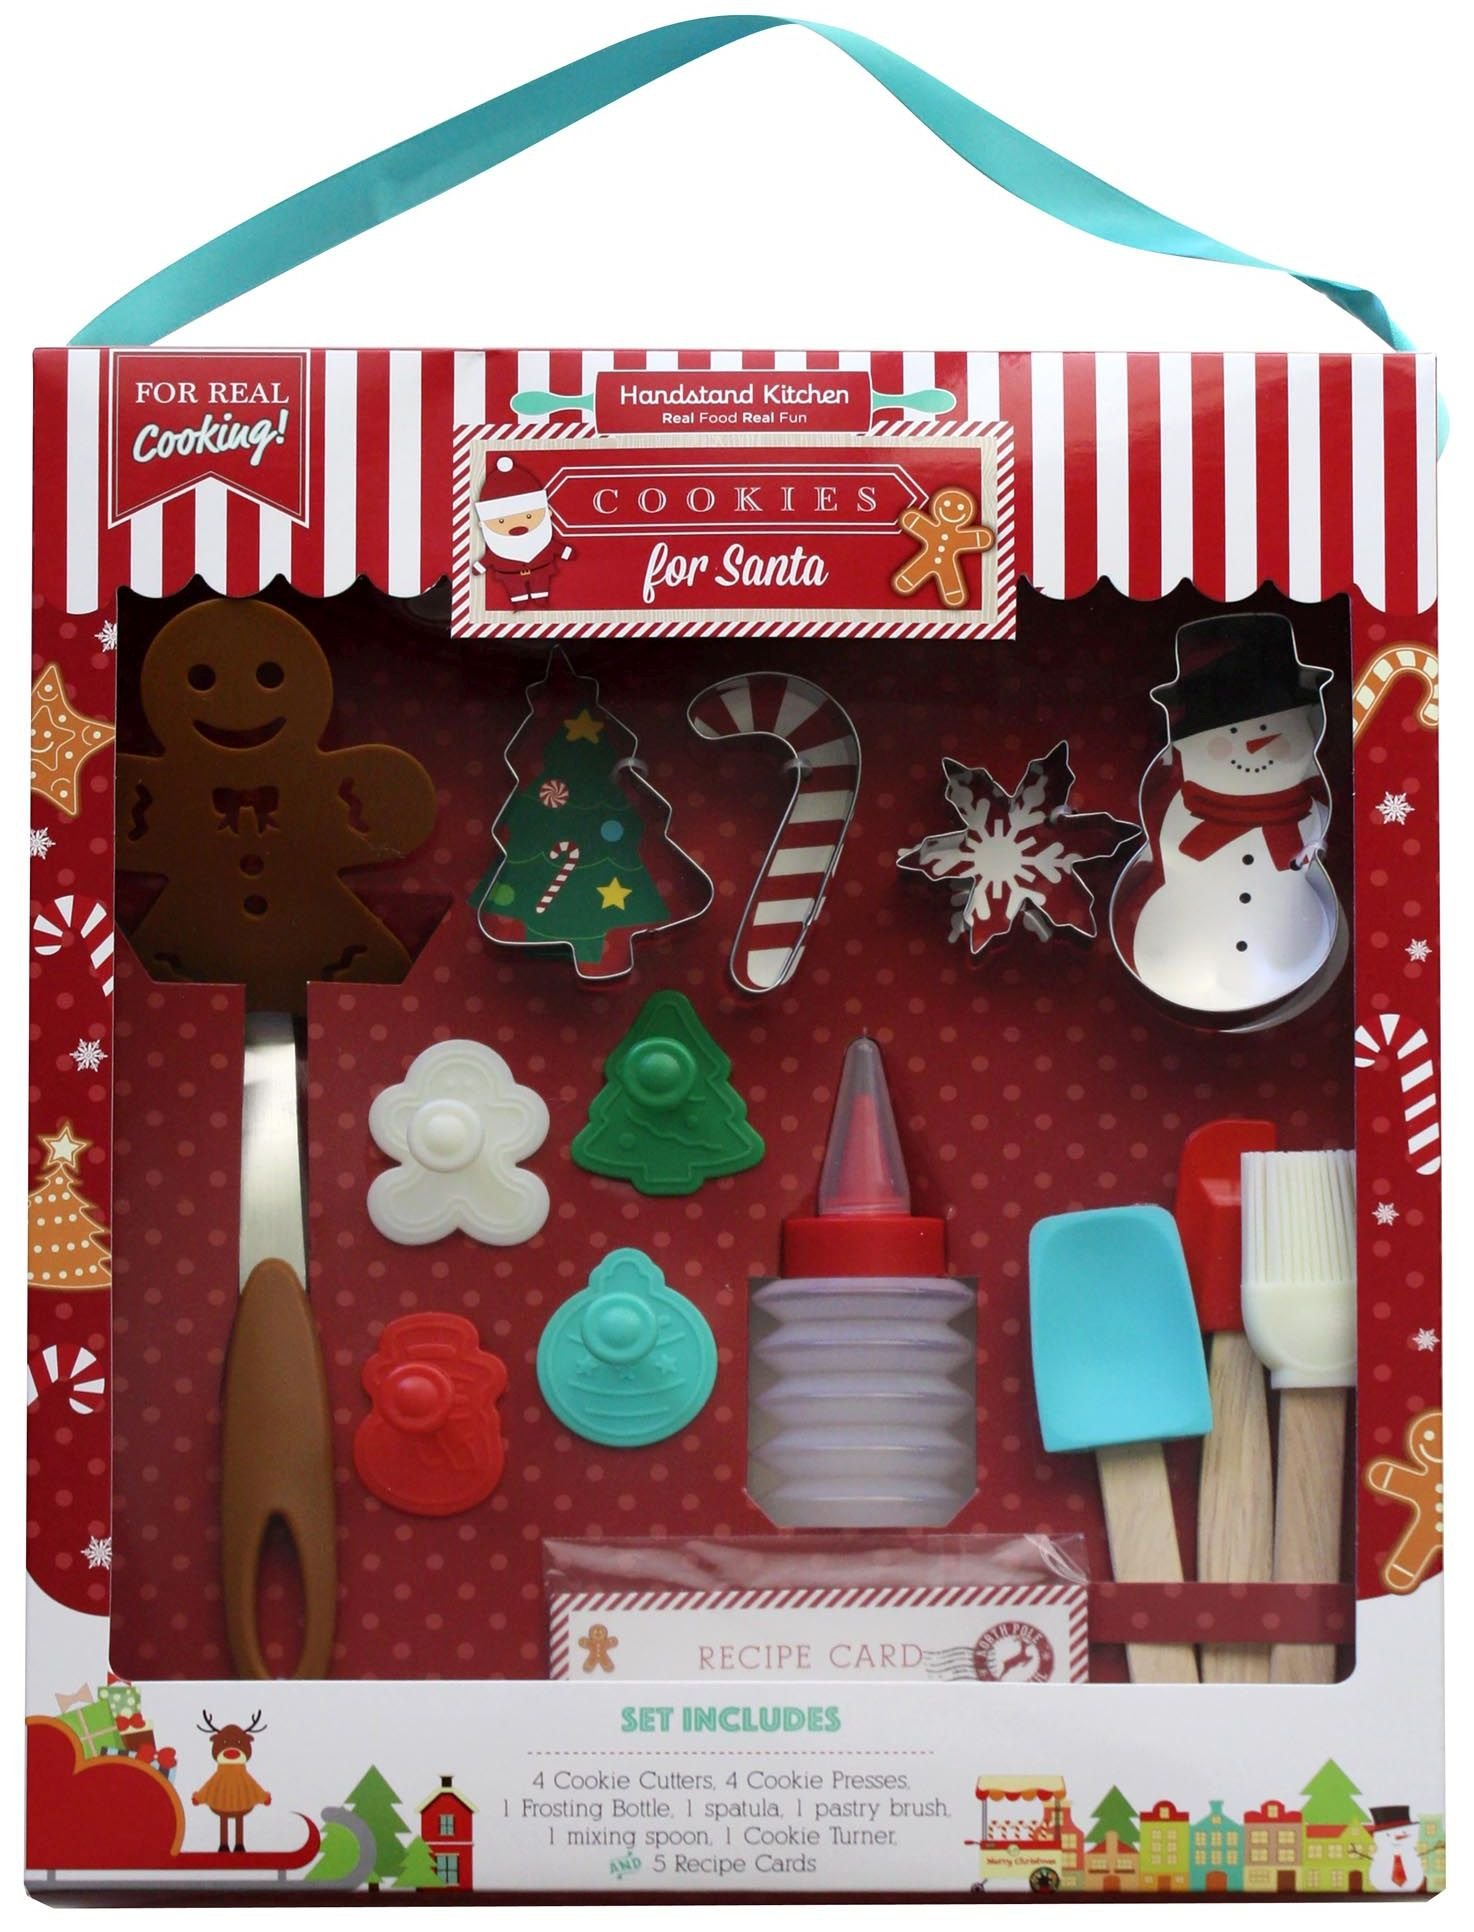 Handstand Kitchen 18-piece Cookies for Santa Real Baking Set with Recipes for Kids